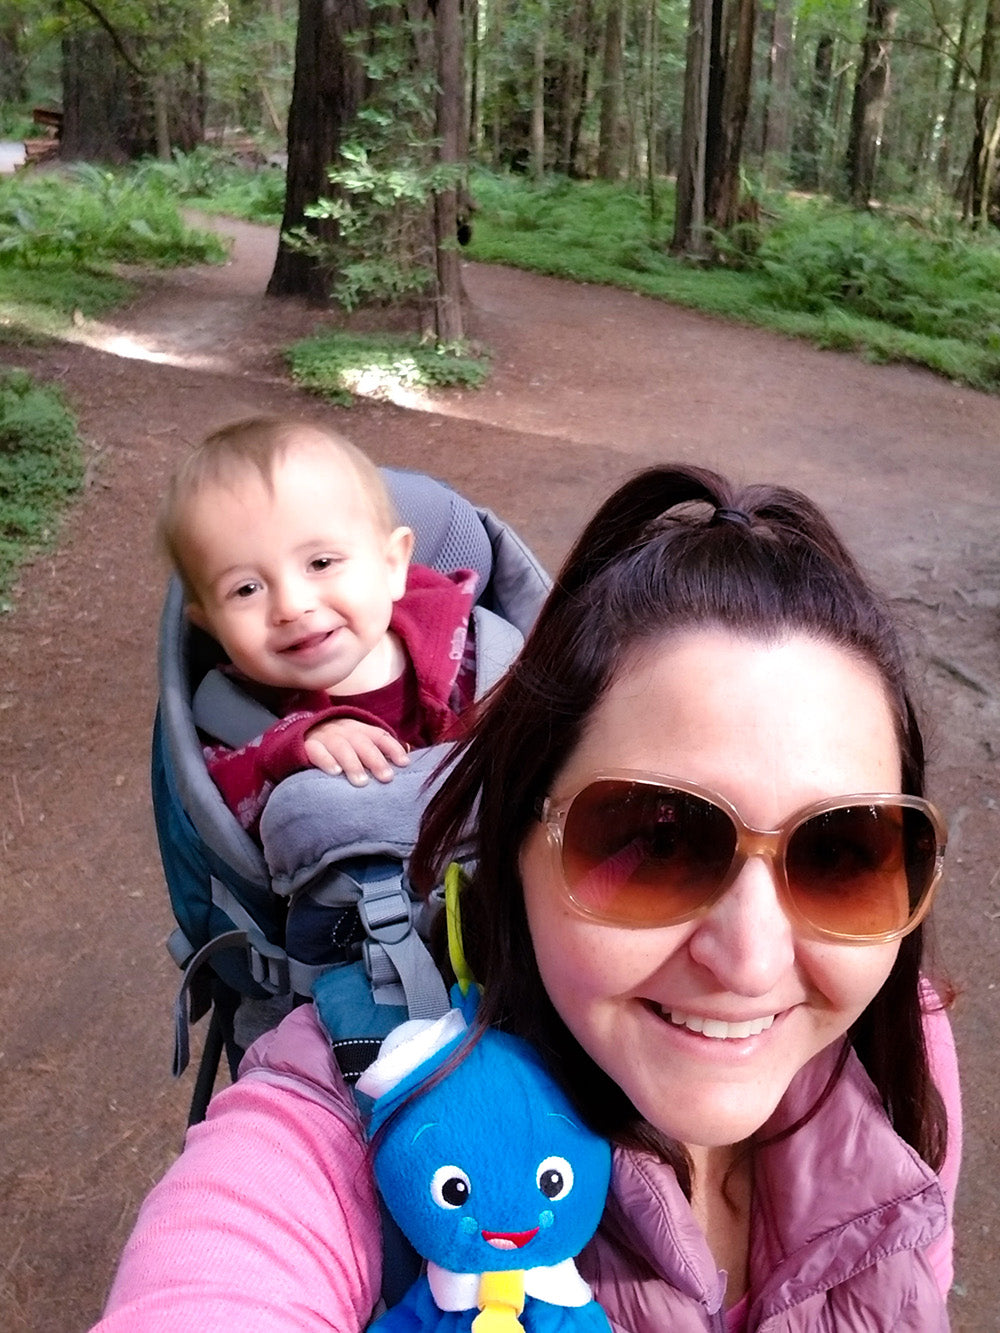 A family that hikes together stays together via Davis Taylor Trading Co ~ My son & I the reason why I work so hard on this biz!